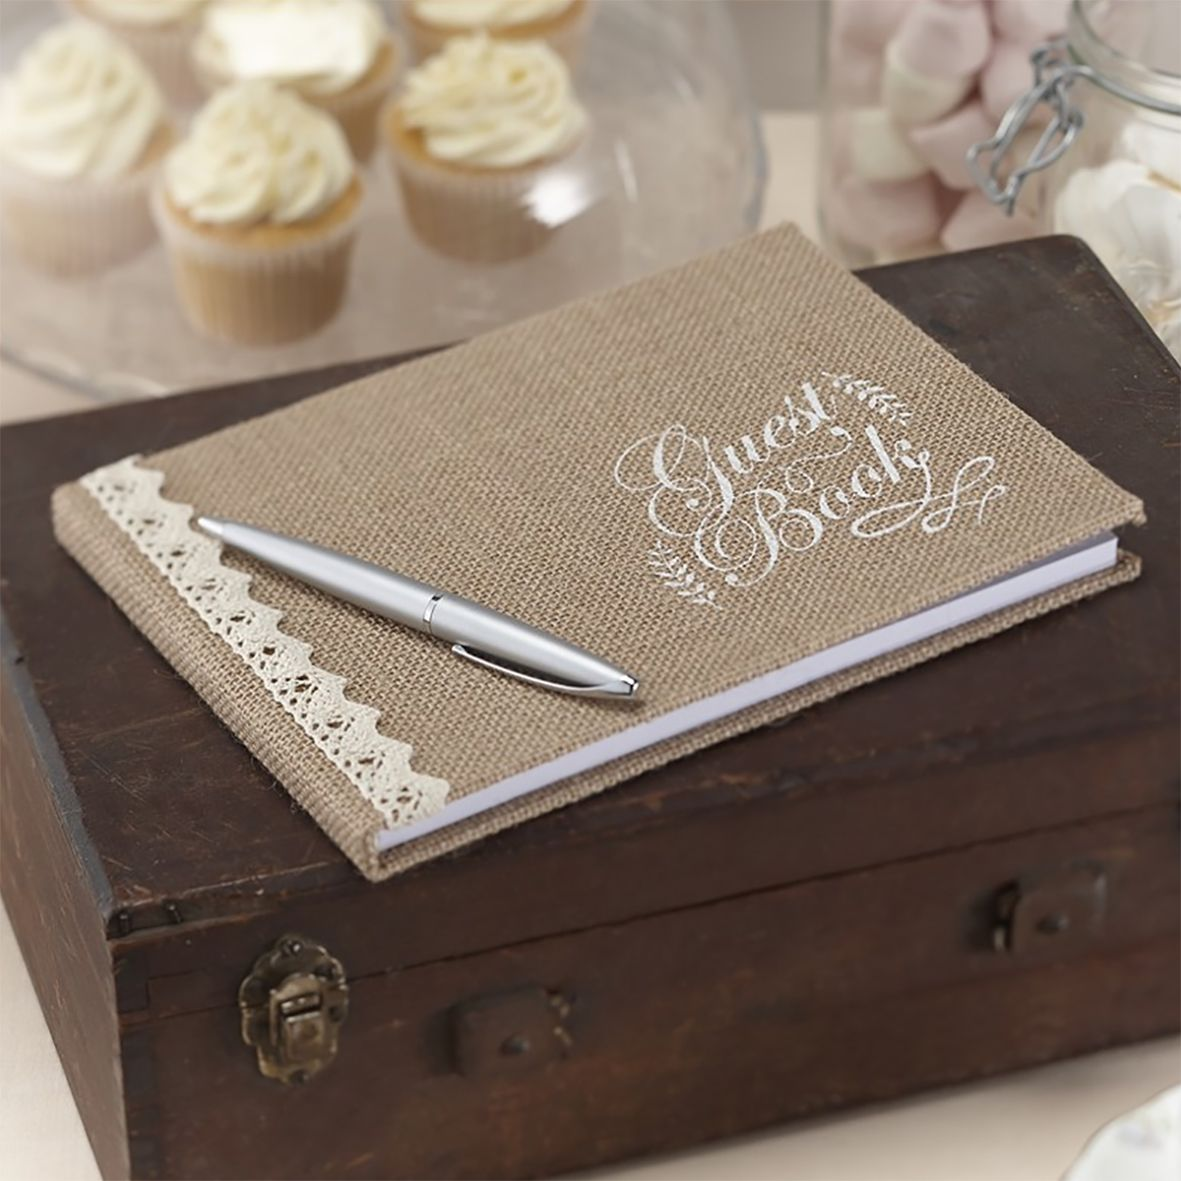 Wedding Guest Books category image